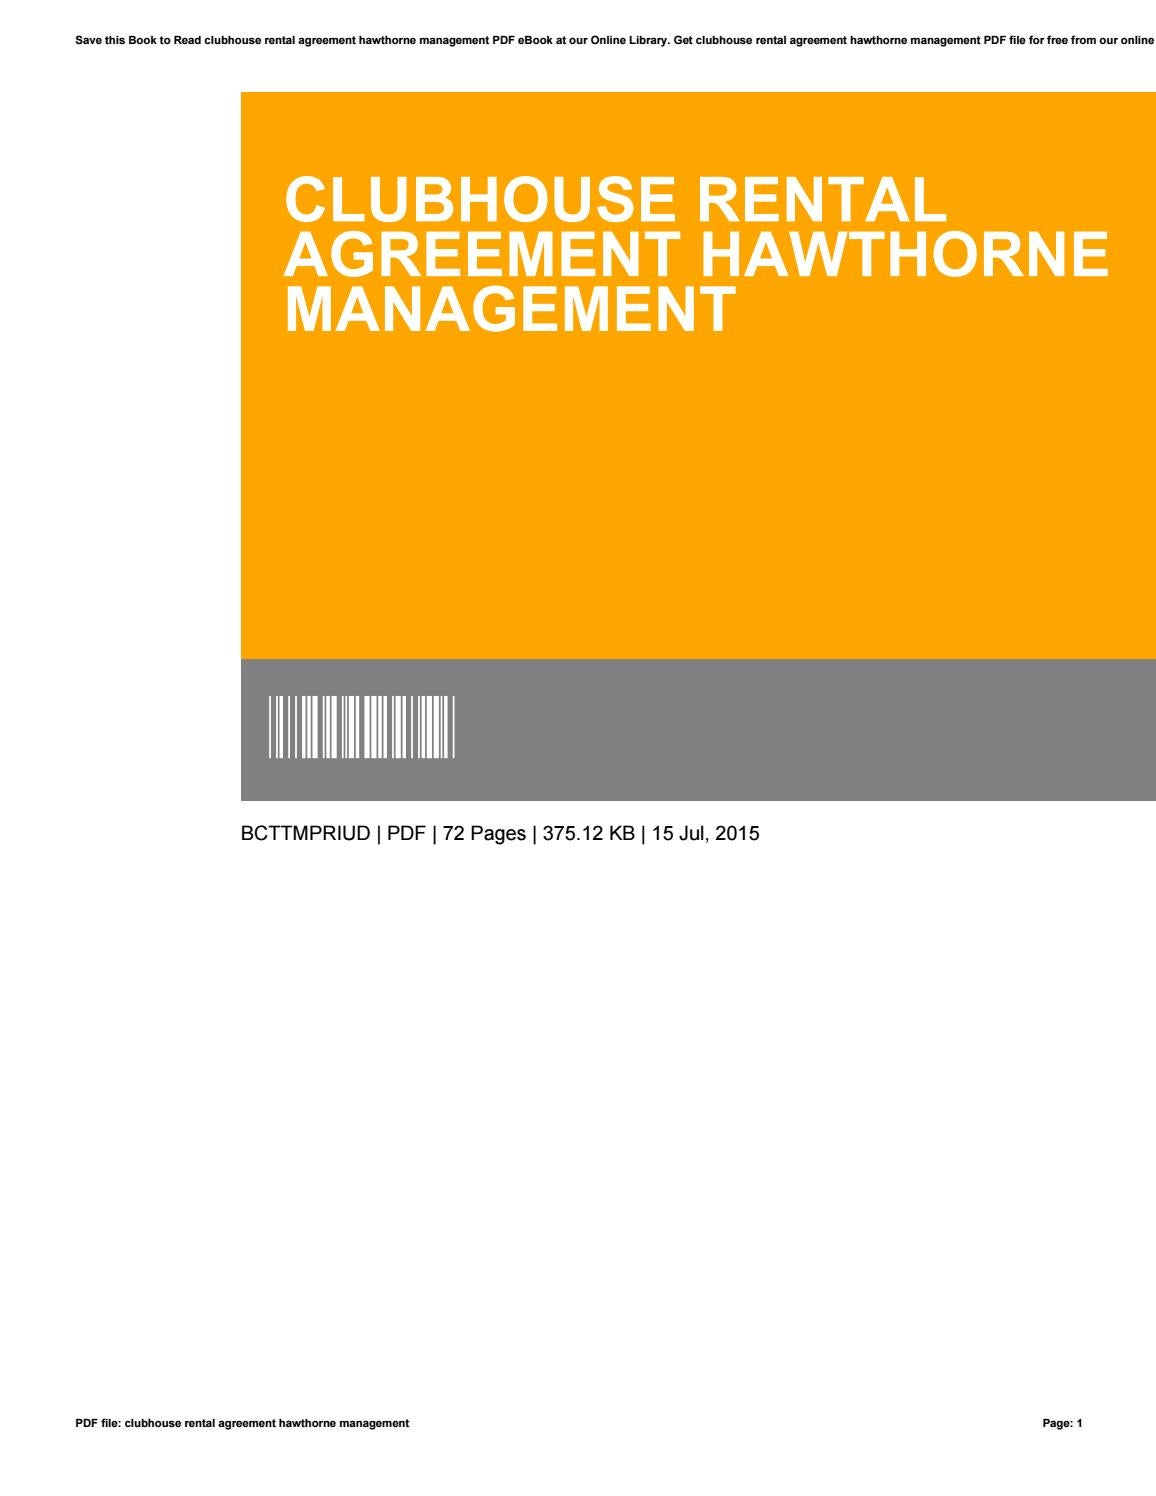 Clubhouse Rental Agreement Hawthorne Management By Richardsneed1715